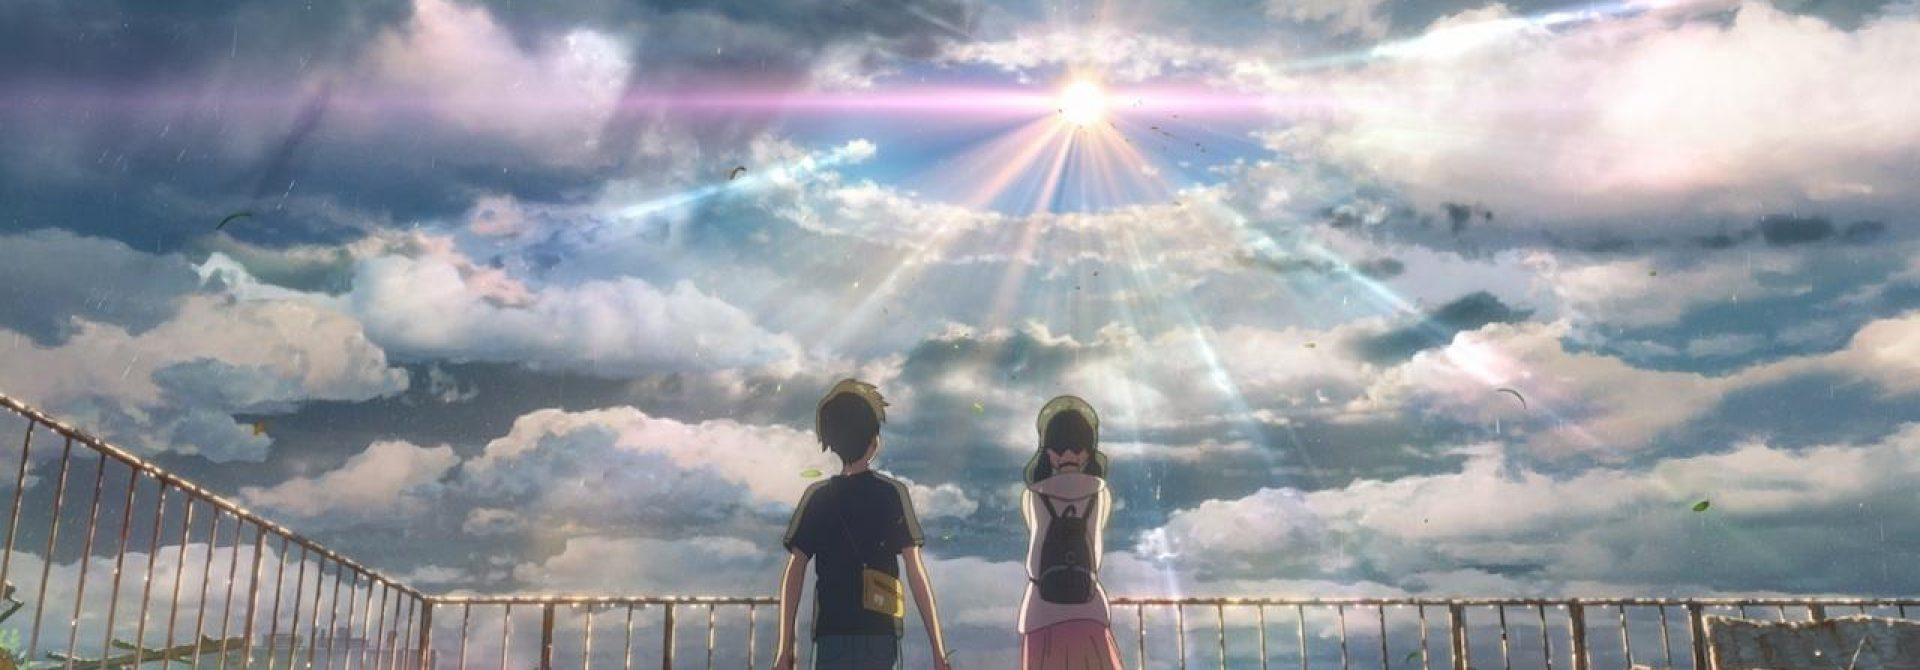 Weathering With You Comes To Digital, Blu-Ray And DVD